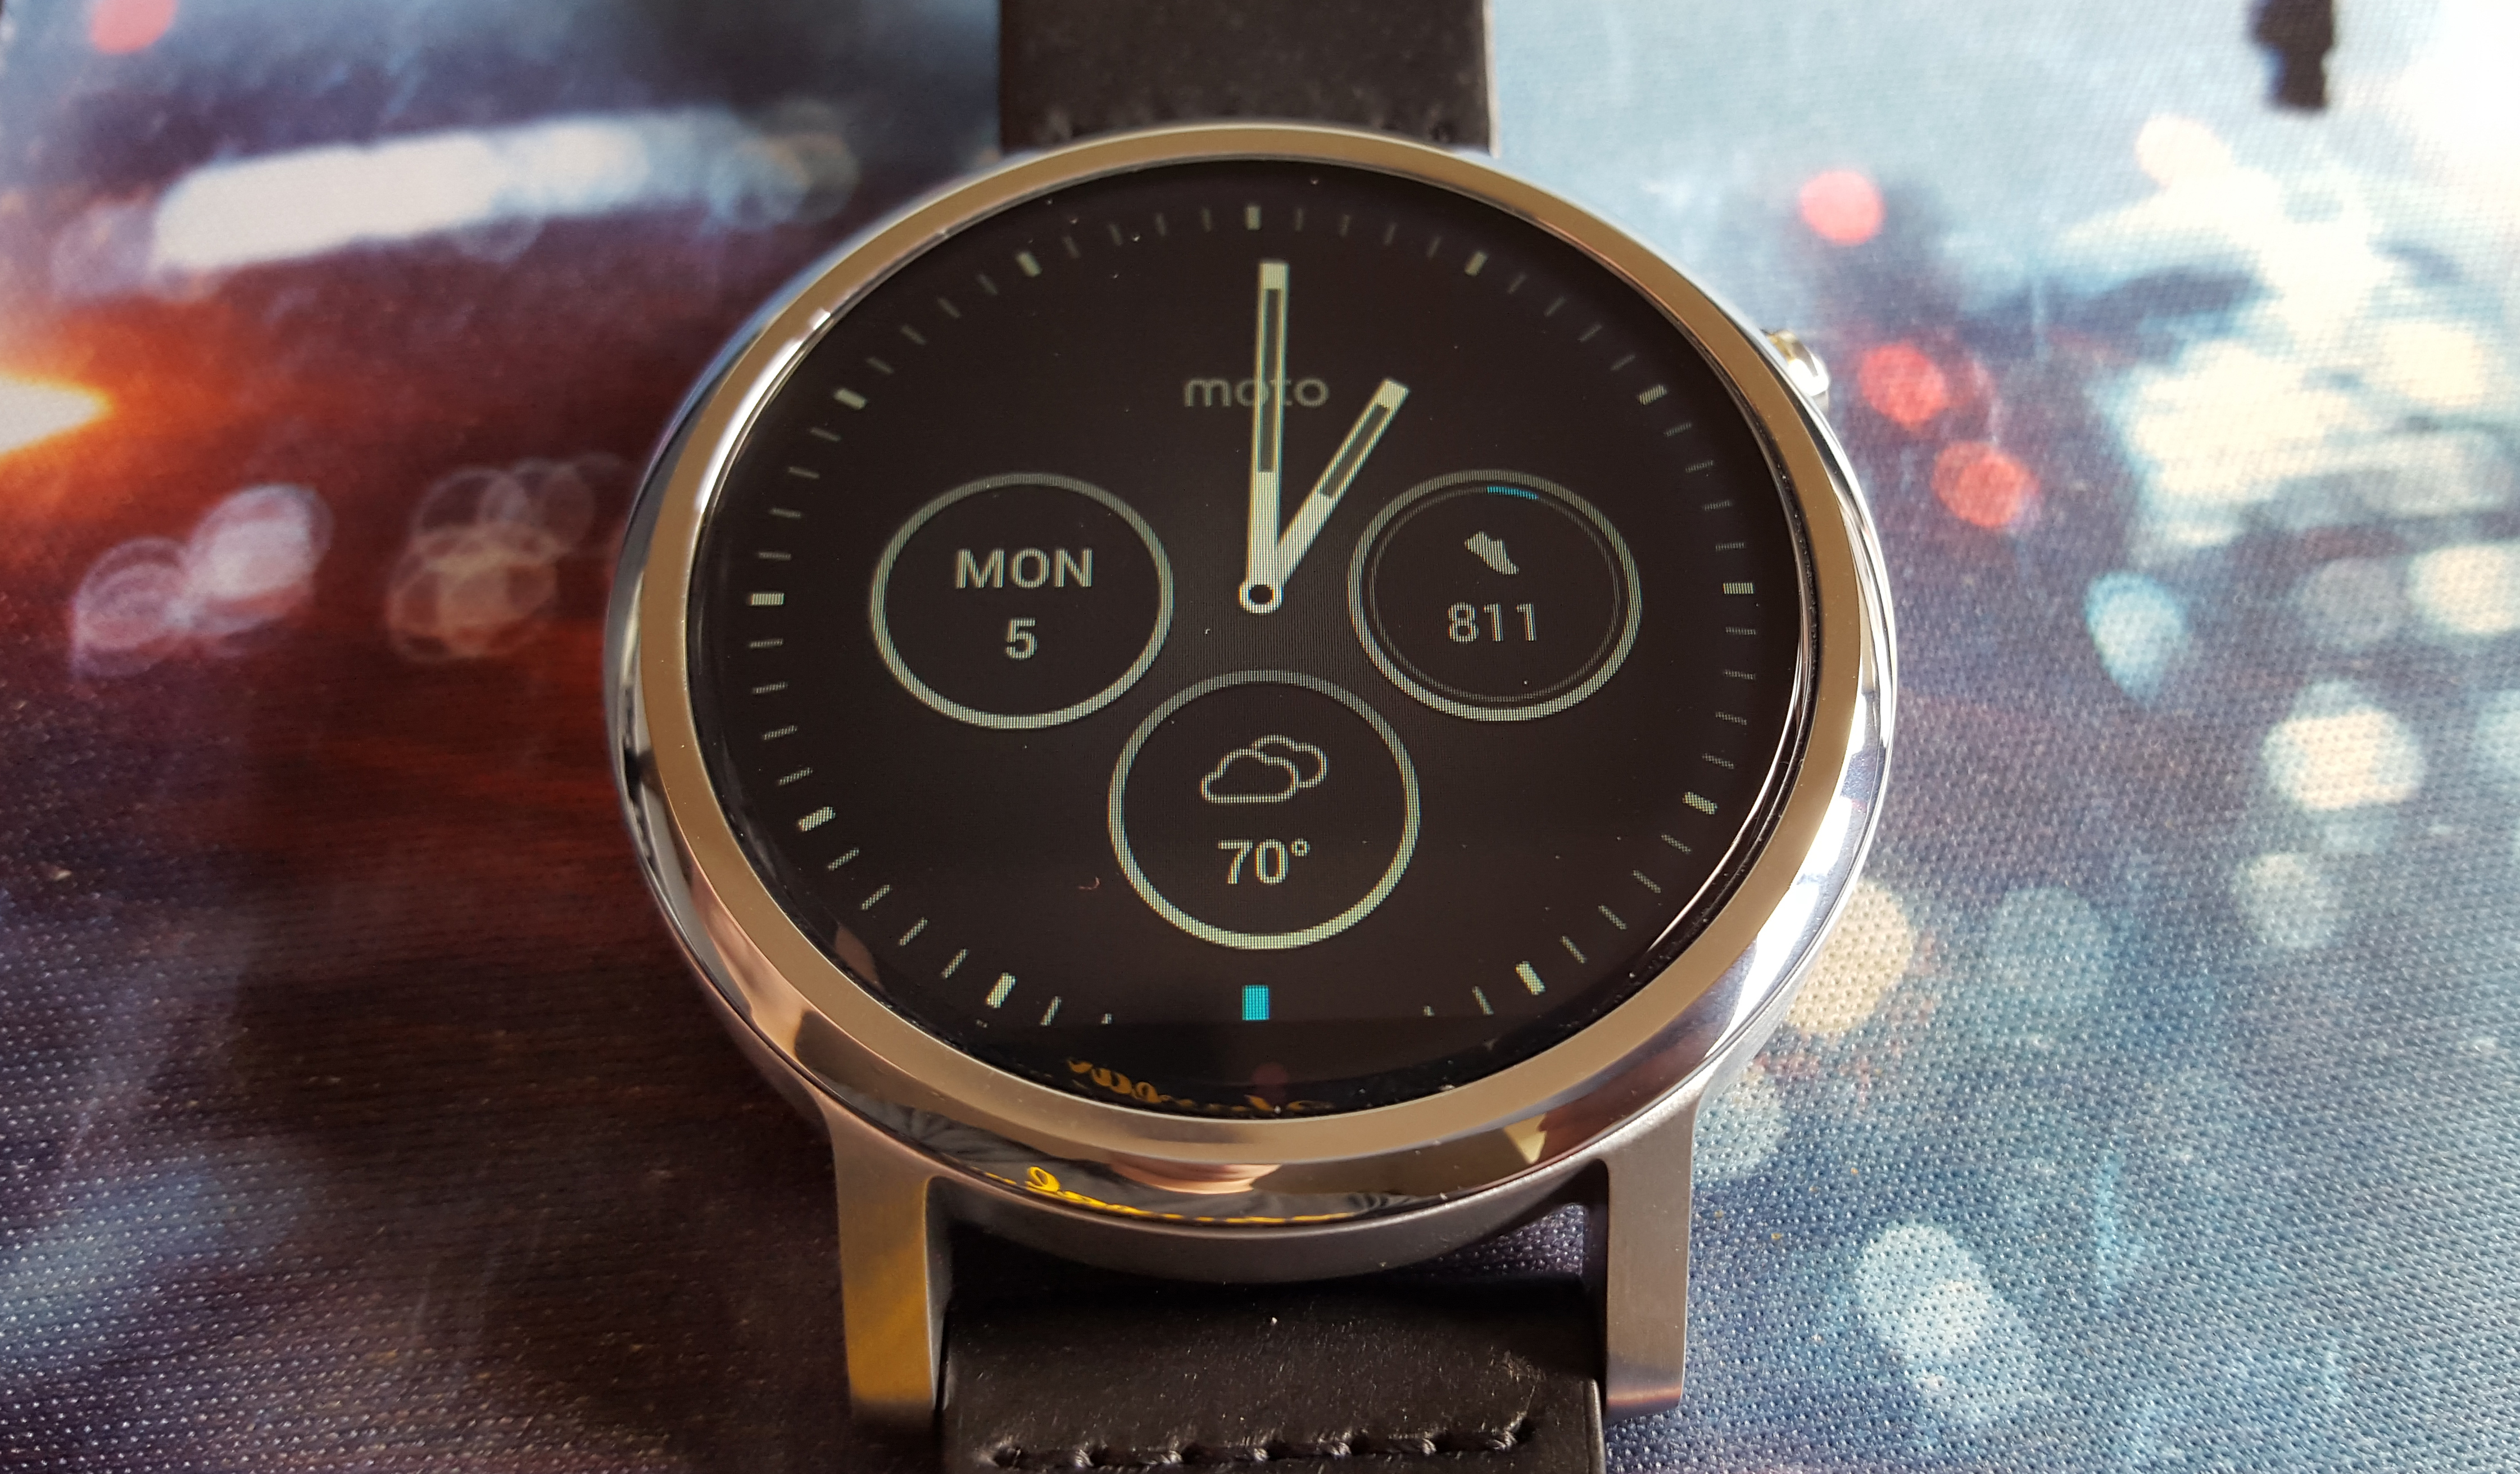 The design, as stated earlier, is an upgraded, more watch-like design that brings the Moto 360 the closets of any smartwatch to this day to looking like a ...